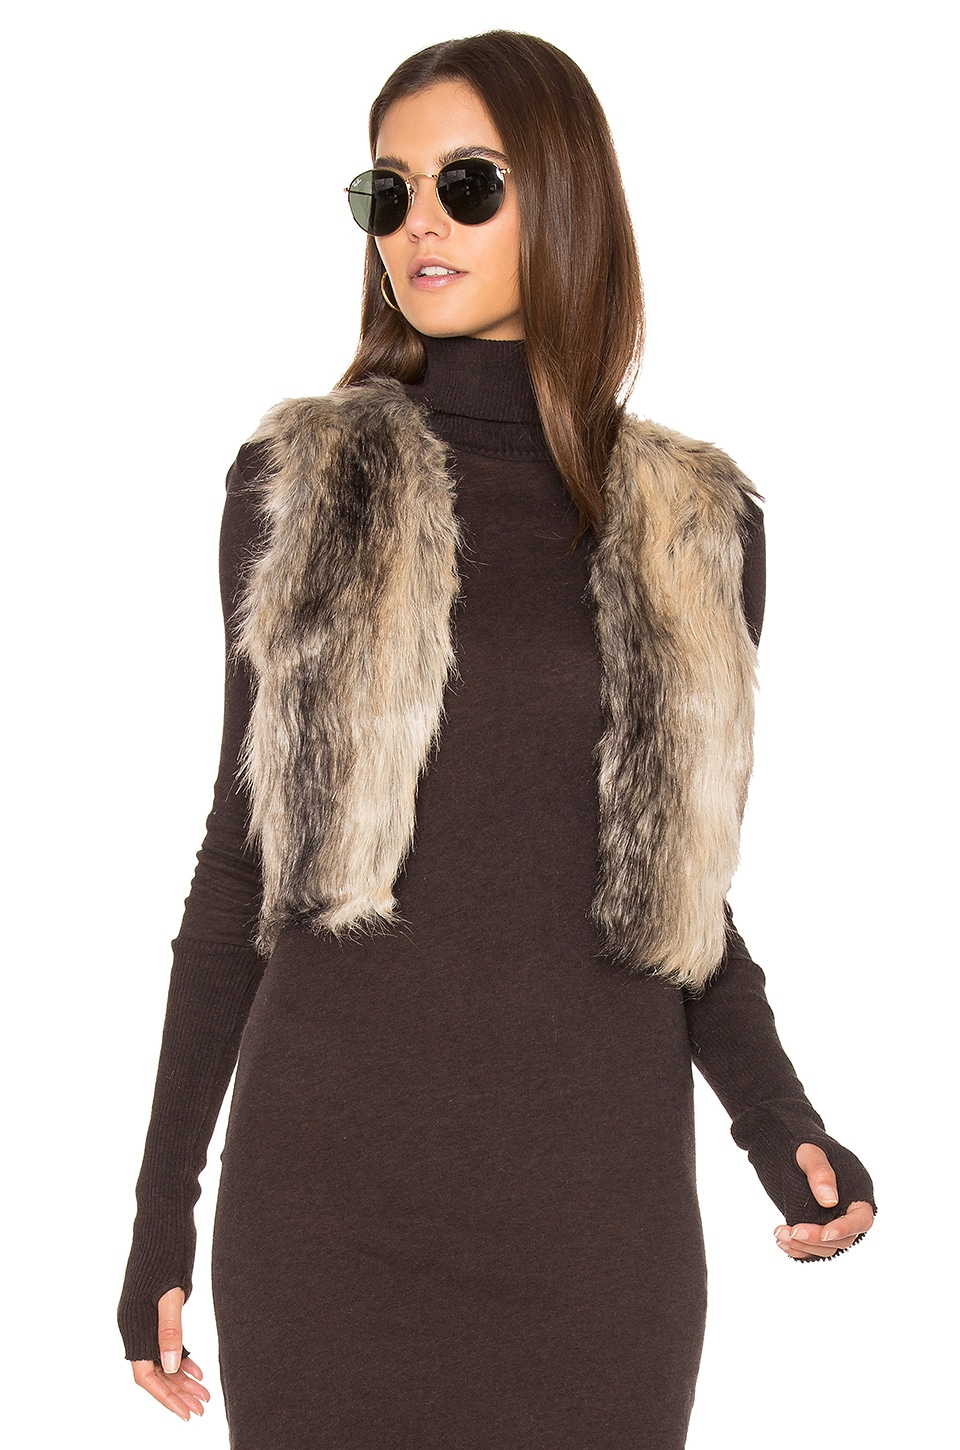 BB Dakota Jack By BB Dakota Loree Faux Fur Vest in Multi